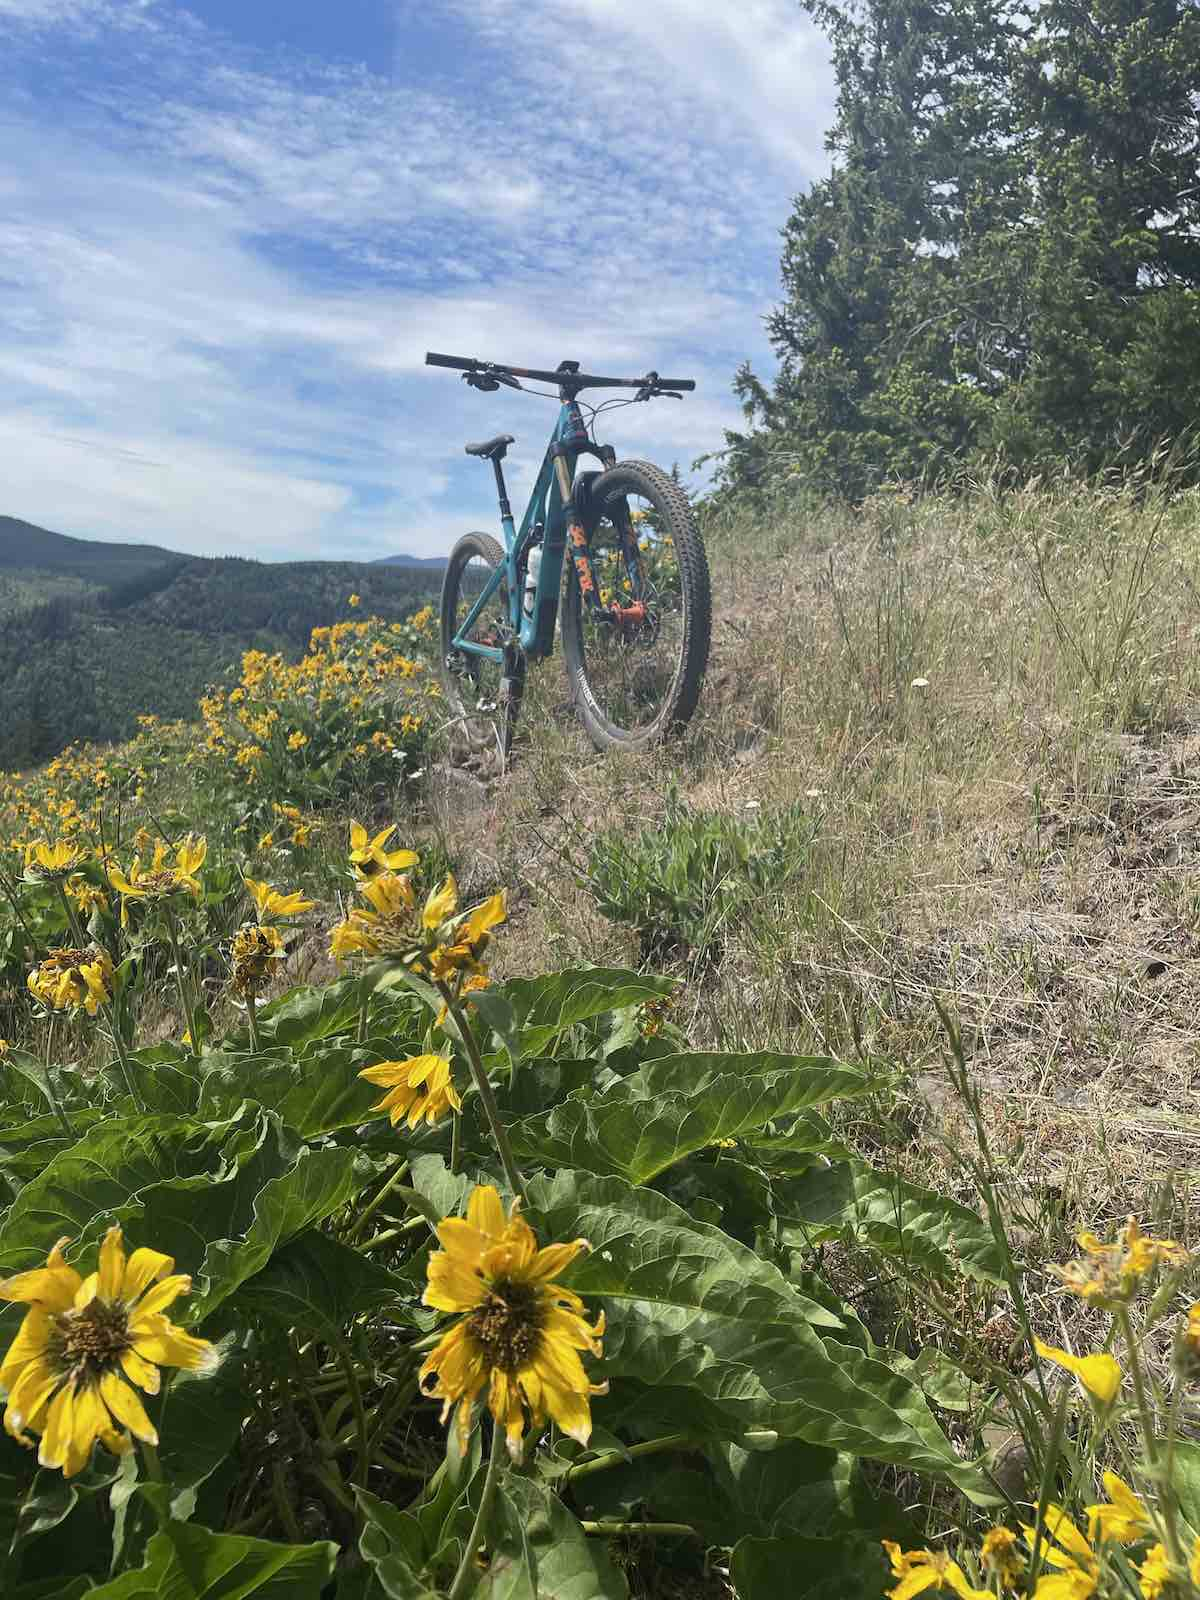 bikerumor pic of the day a mountain bike is on a trail that is covered in tall grass with sunflowers to one side the trail slopes so that you can see trees at the top and a mountain valley below, it is sunny and there are whips clouds in the sky.